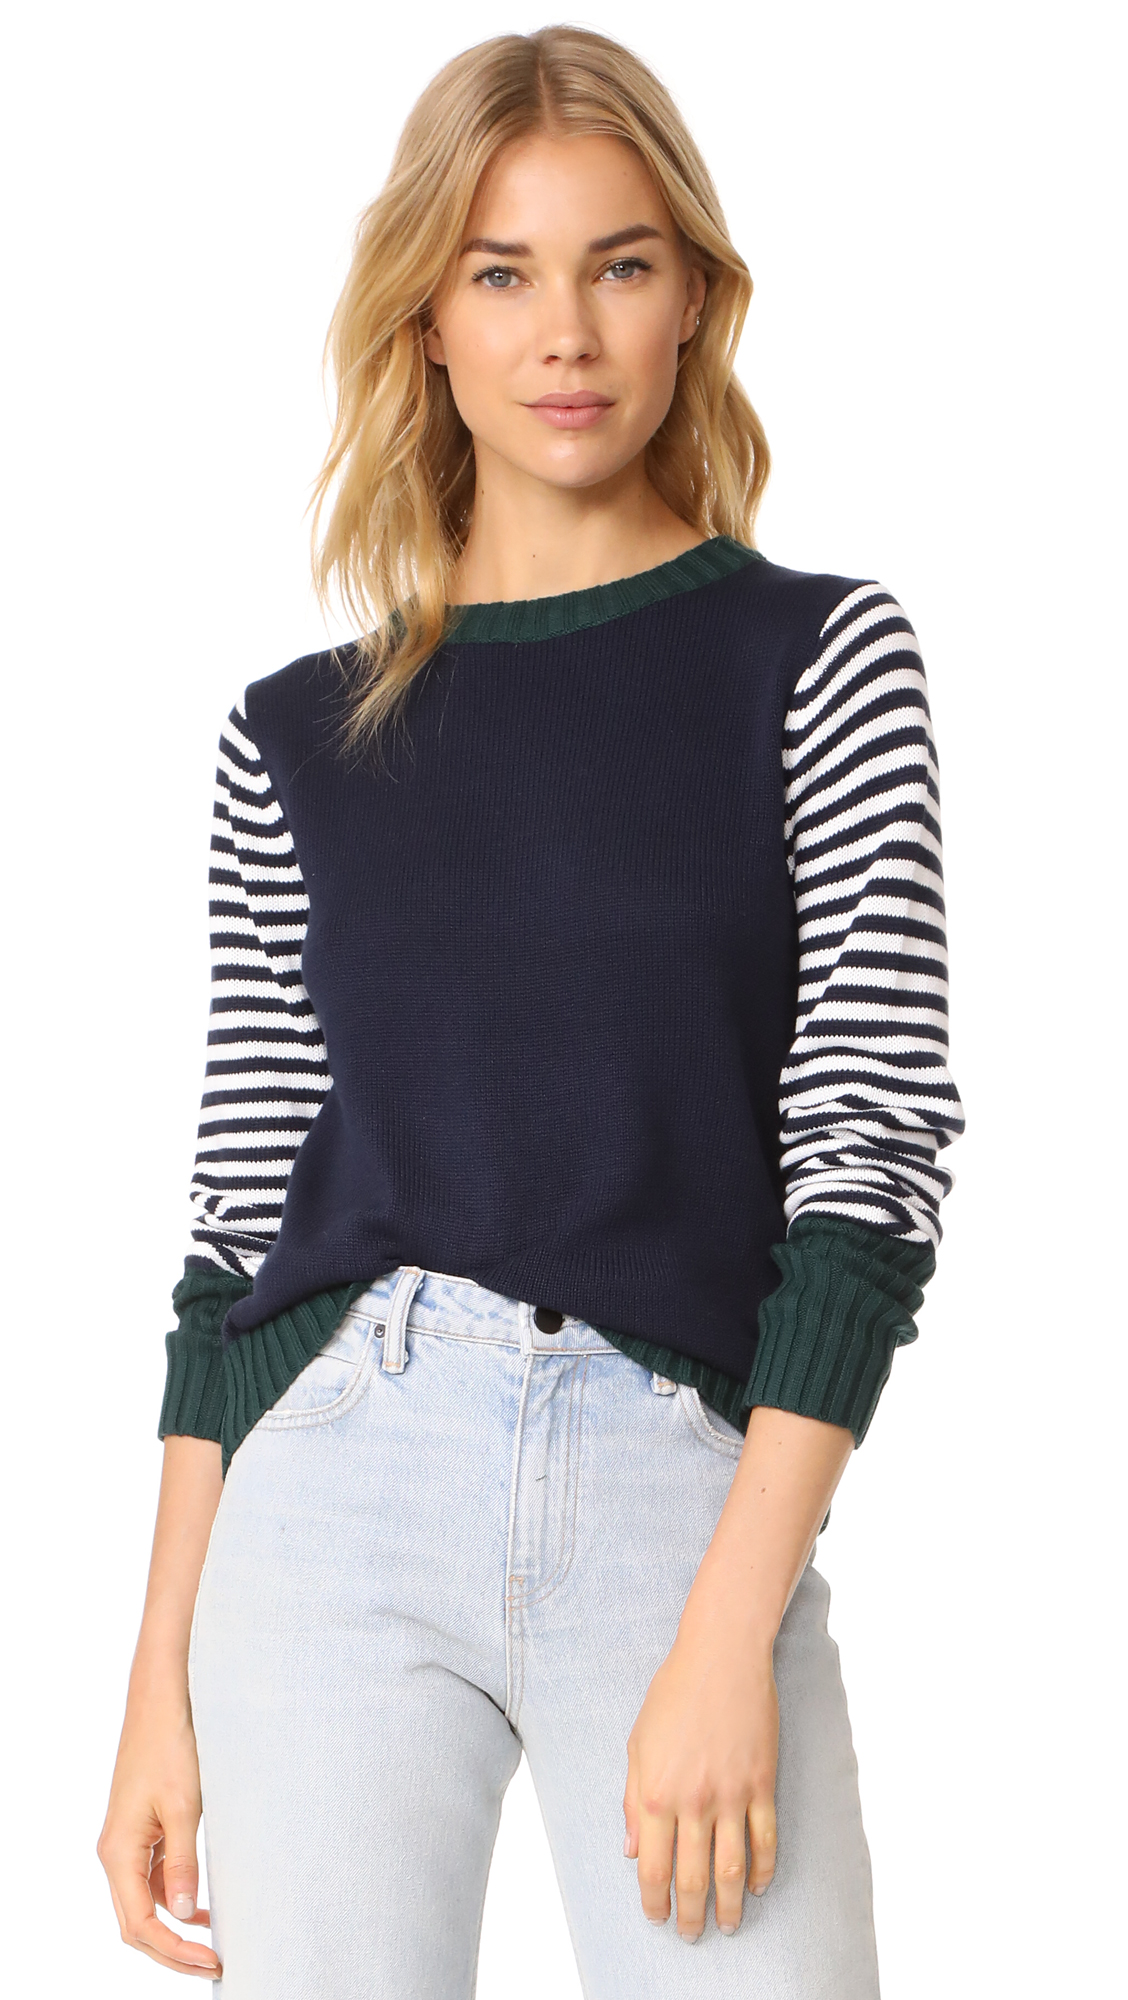 ENGLISH FACTORY Stripe Knit Sweater With Tie - Peacock Blue